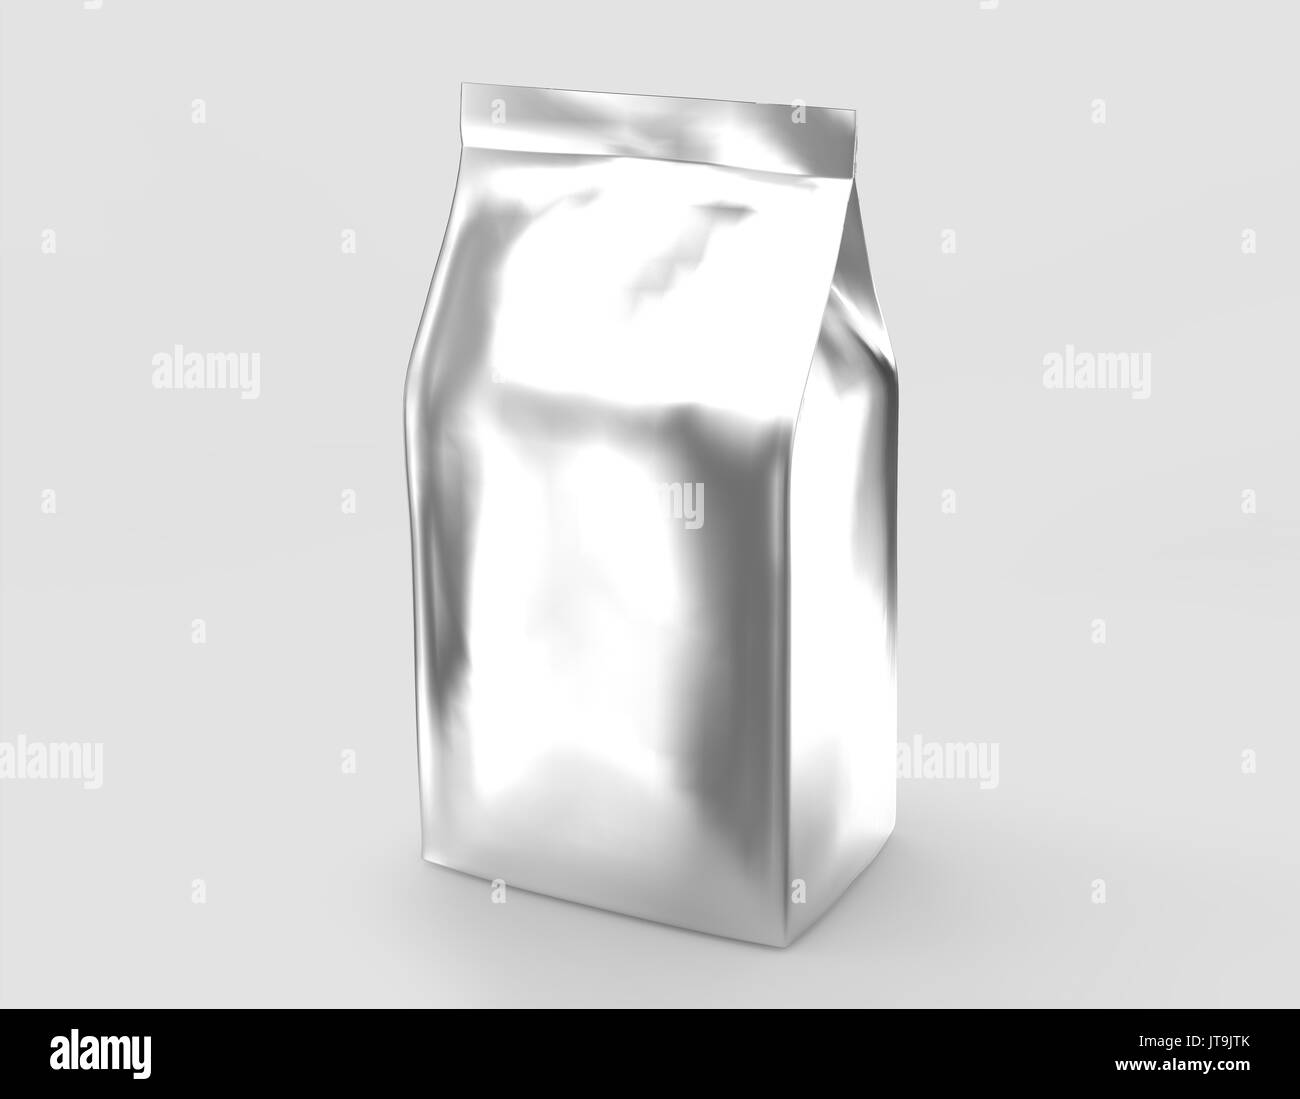 Download pyramid bean bag chair psd mockup with file size : Silver Coffee Bean Bag Mockup Blank Foil Bag Template In 3d Rendering Stock Photo Alamy